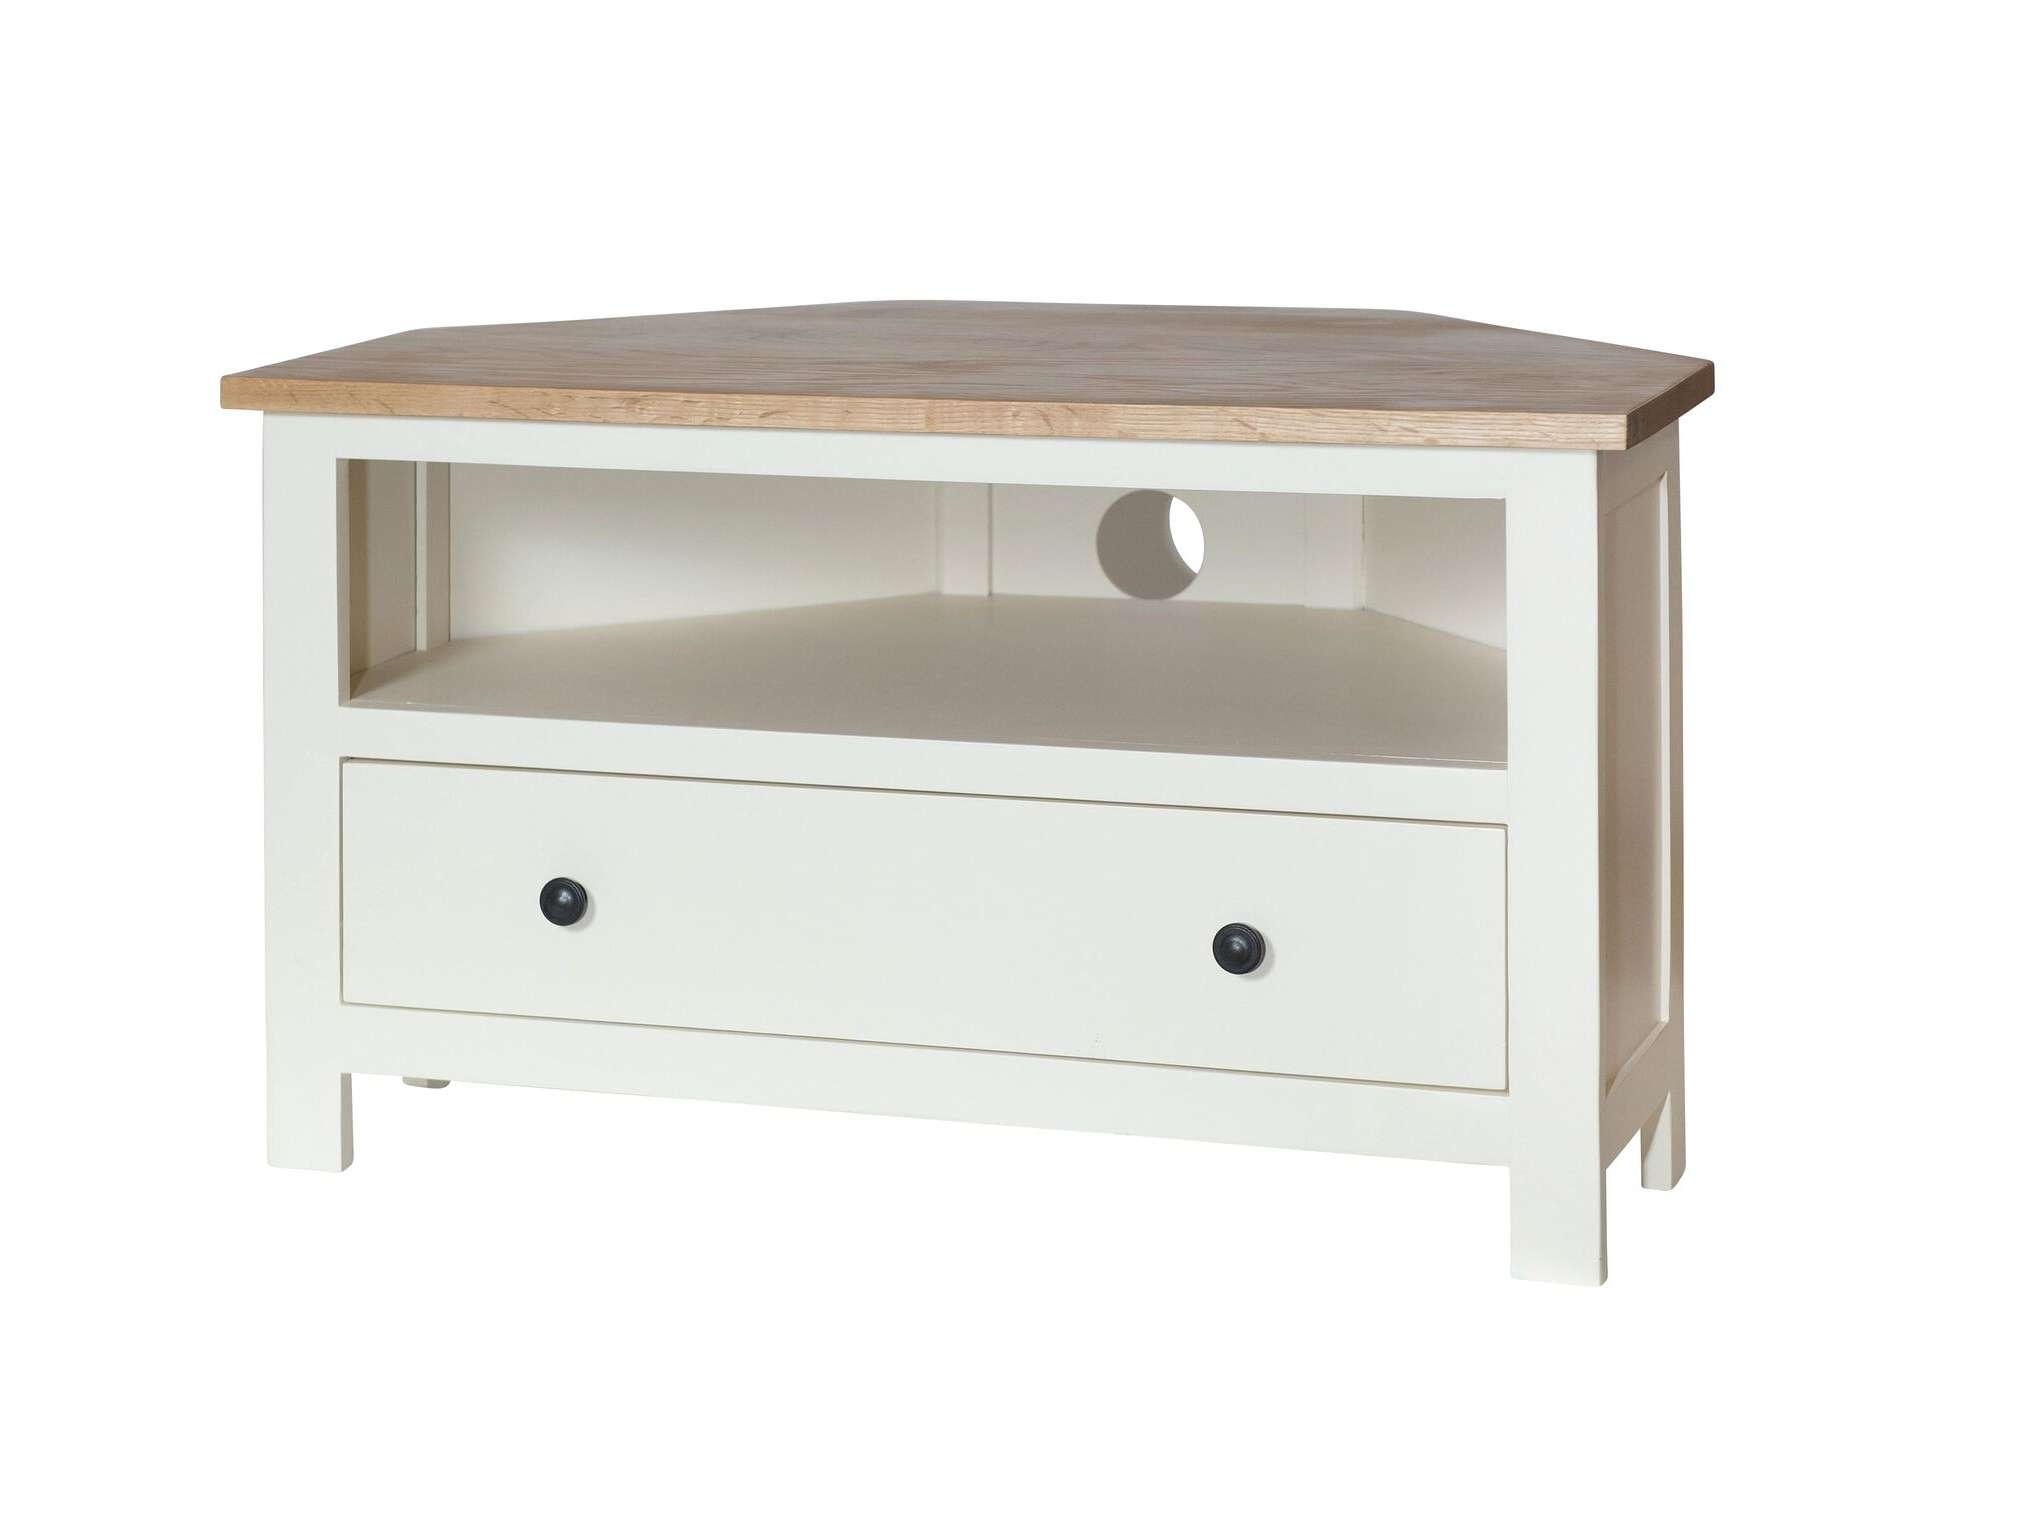 S0 – Cream Painted Oak Top Corner Tv Unit – Country Furniture Barn Within Painted Corner Tv Cabinets (View 9 of 20)